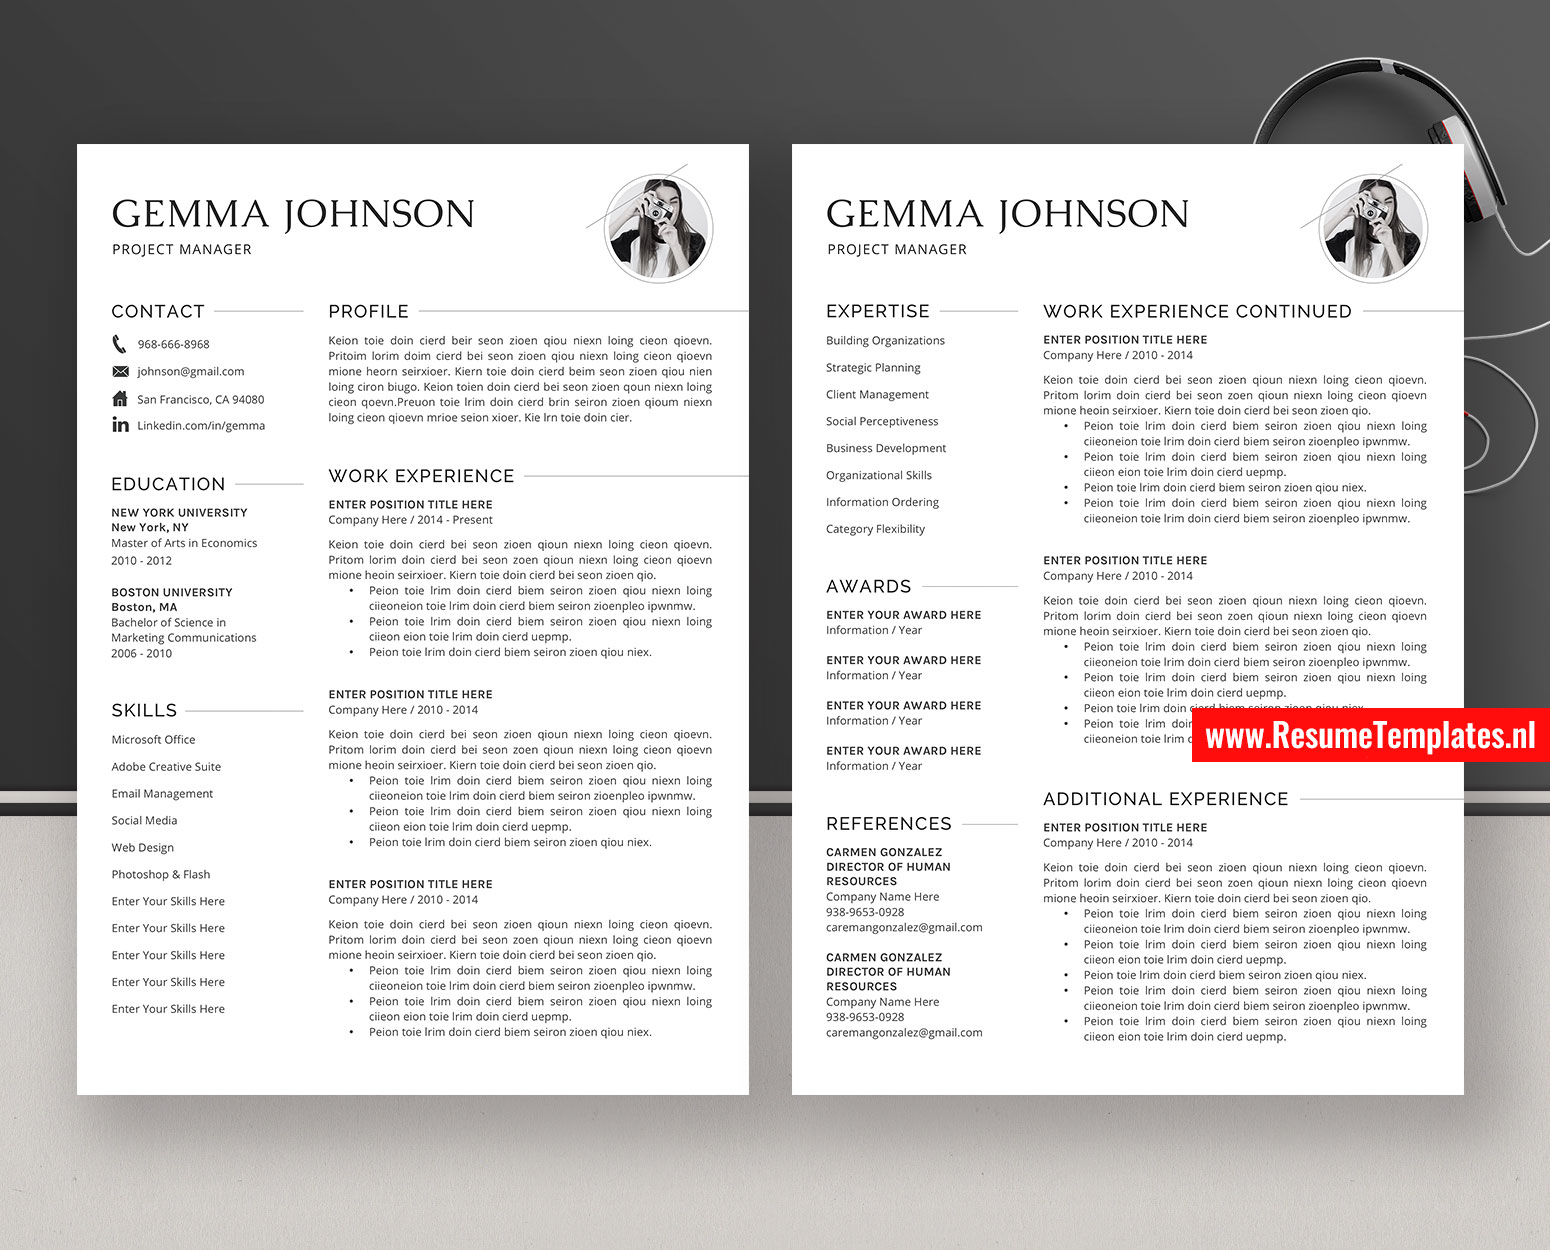 Resume Template For Word 2010 from www.resumetemplates.nl